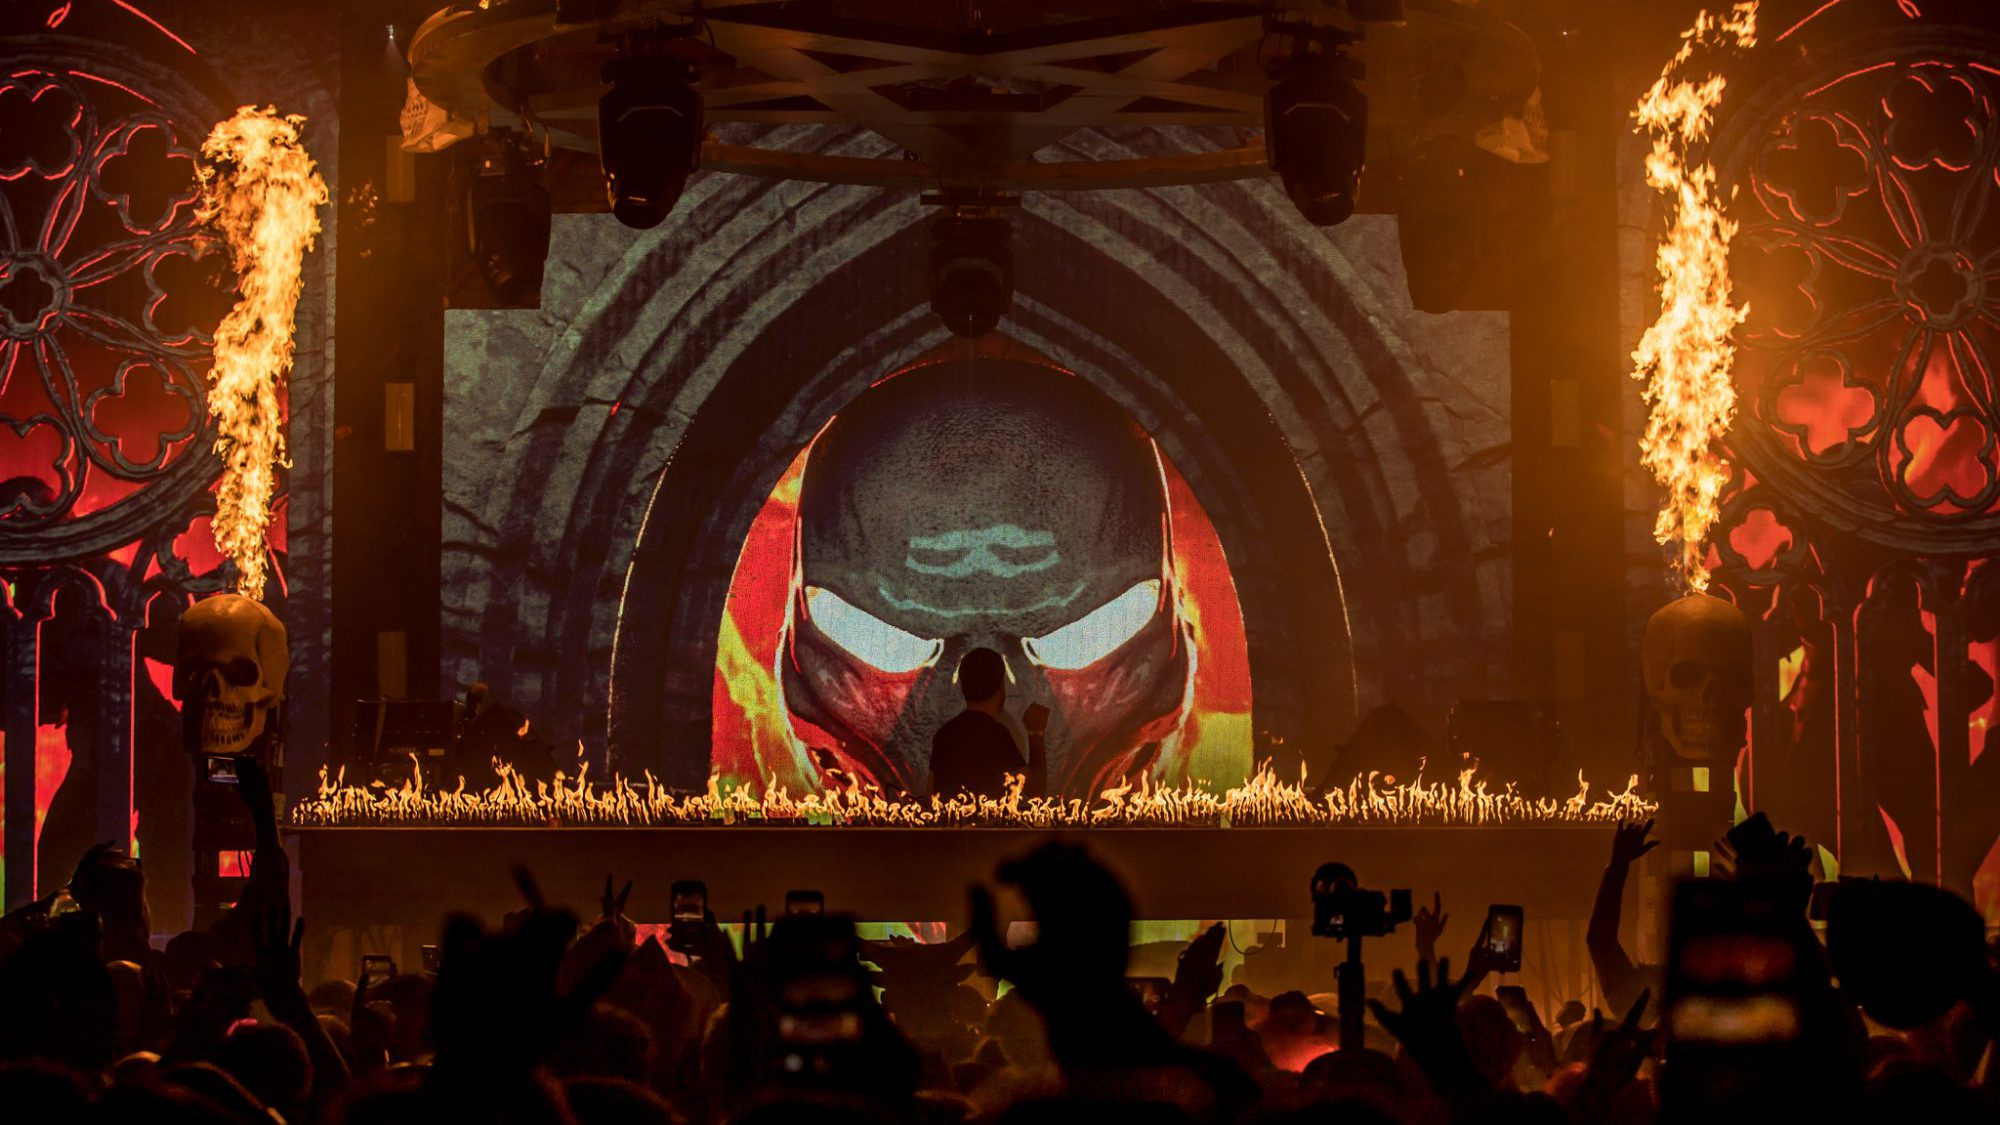 Gui Boratto on The Great Hell stage Cityfox Halloween Festival 2019